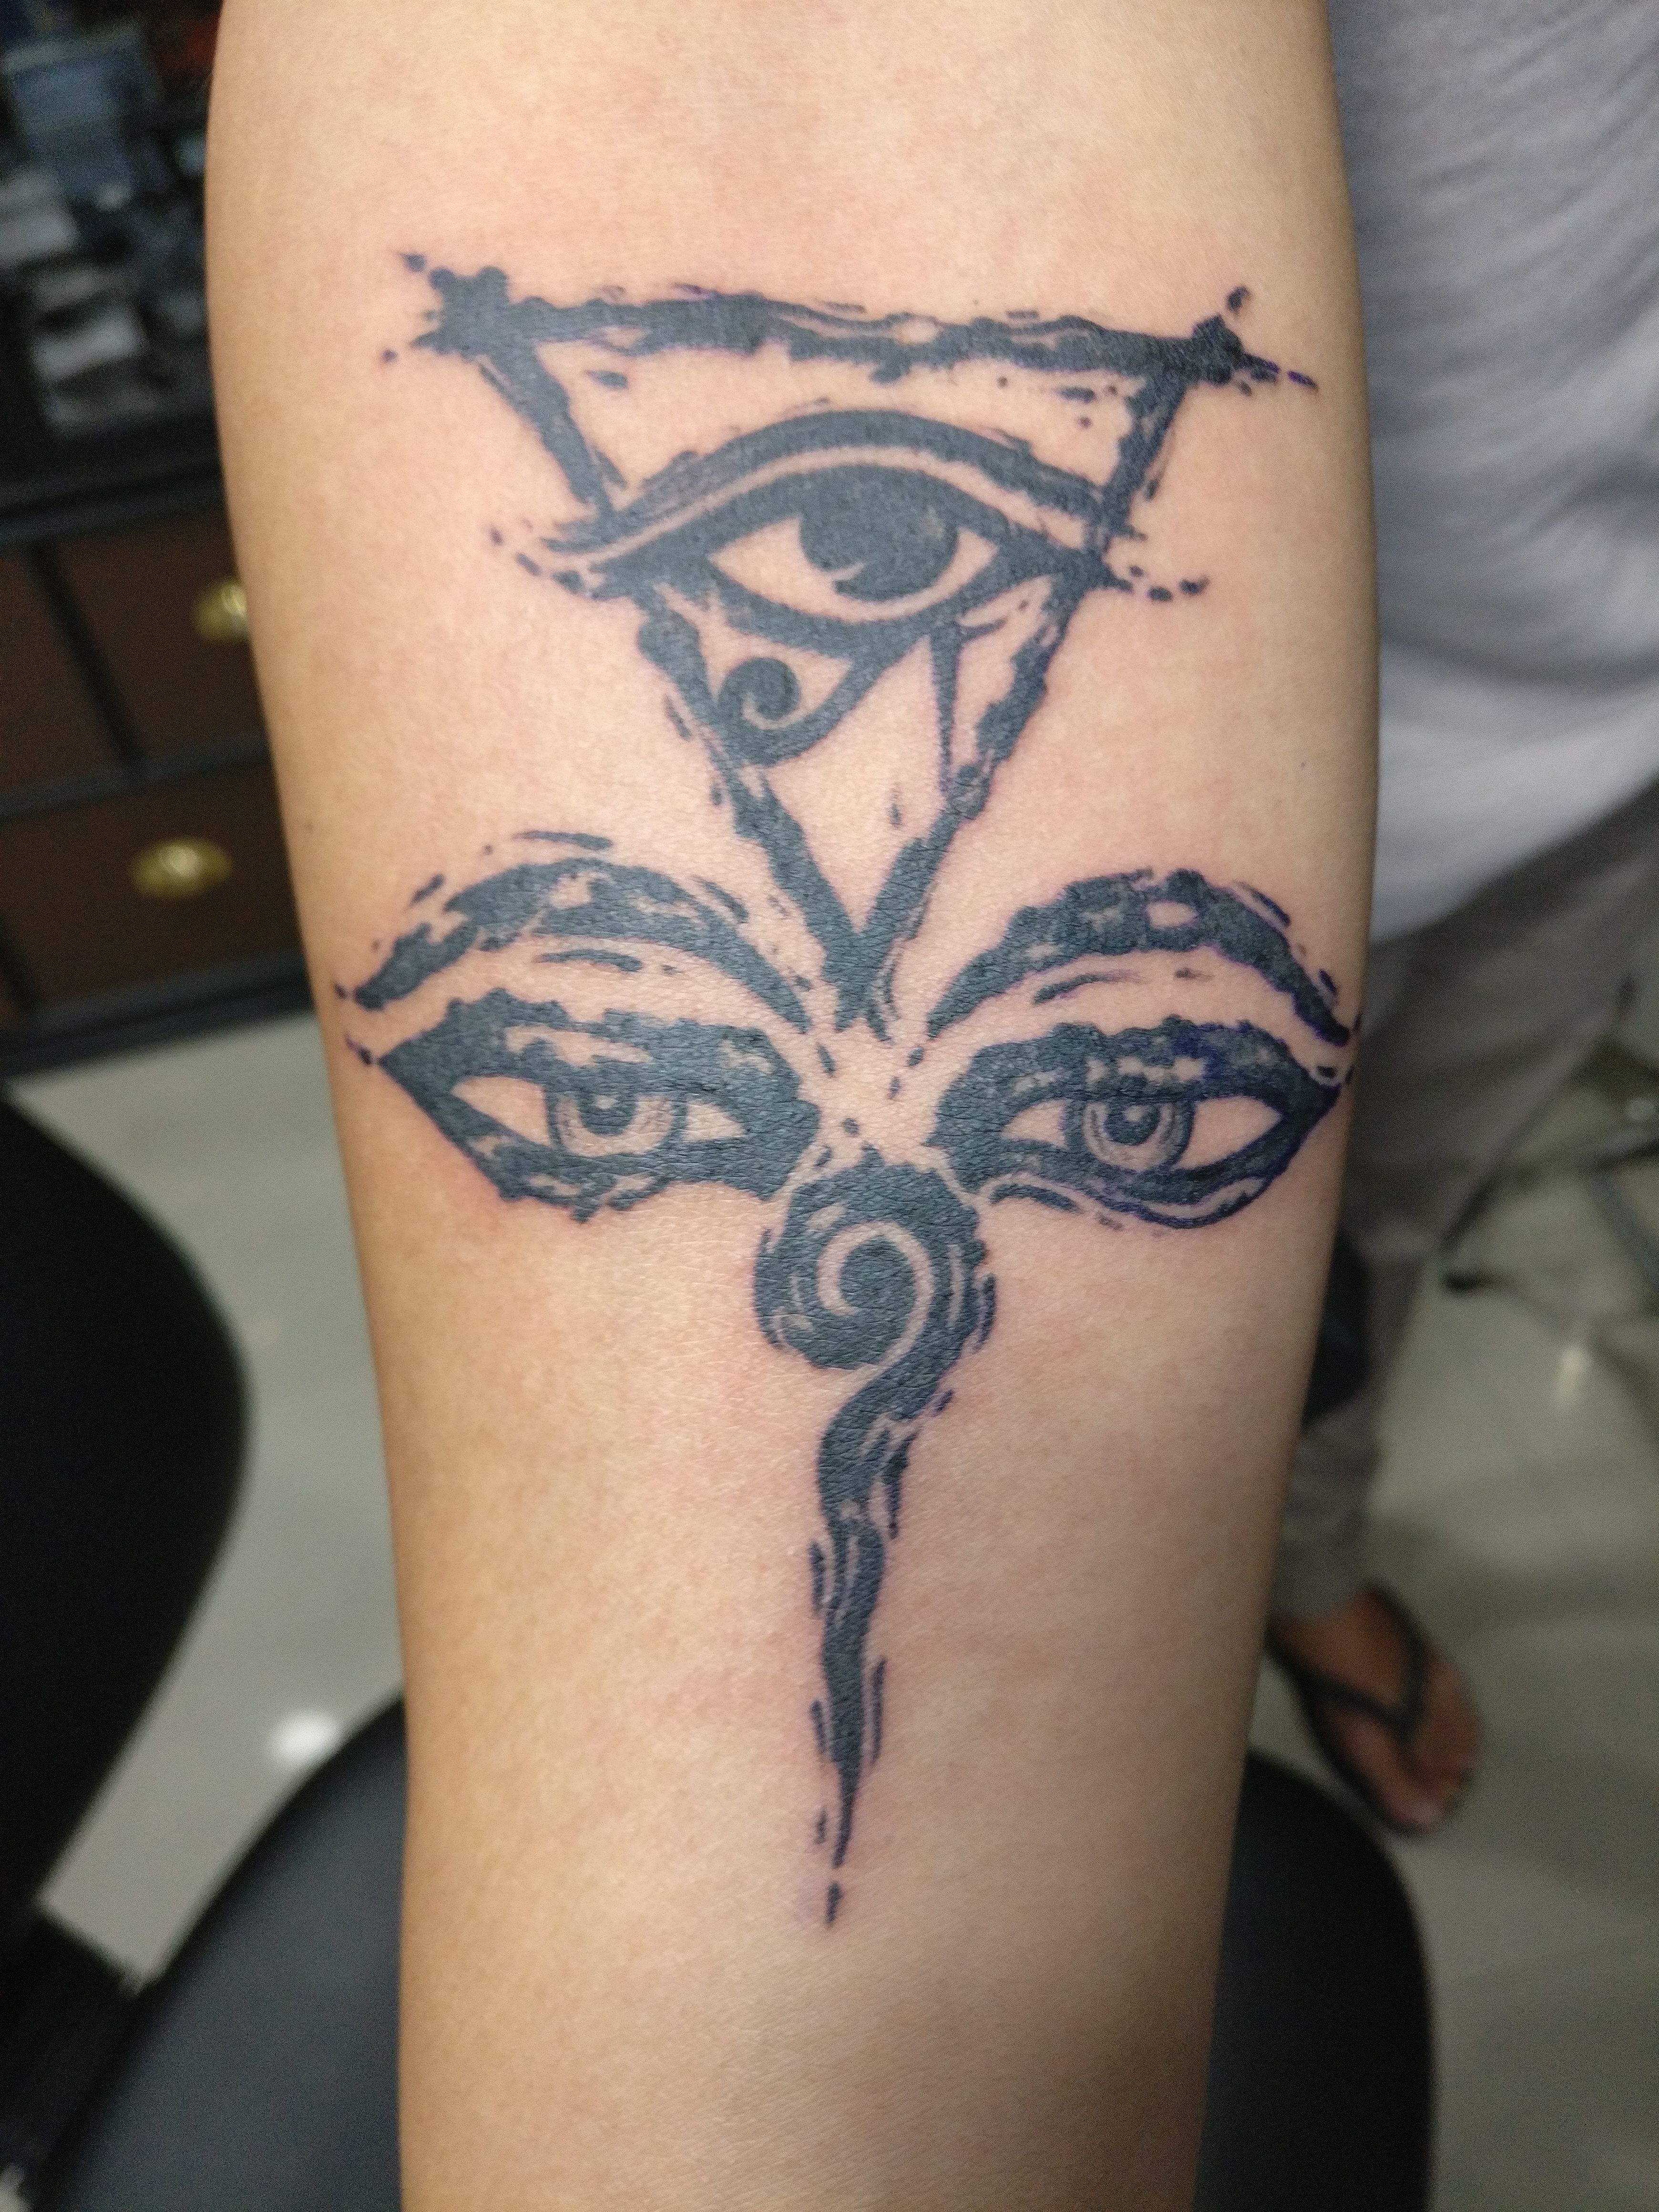 Anands Tattoo Artist Ananda Koirala Nepal Tattoo Pokhara Tattoo Buddha Eye Tattoo Design Abstract Buddha Eye With Egy Nepal Tattoo Eye Tattoo Egyptian Tattoo